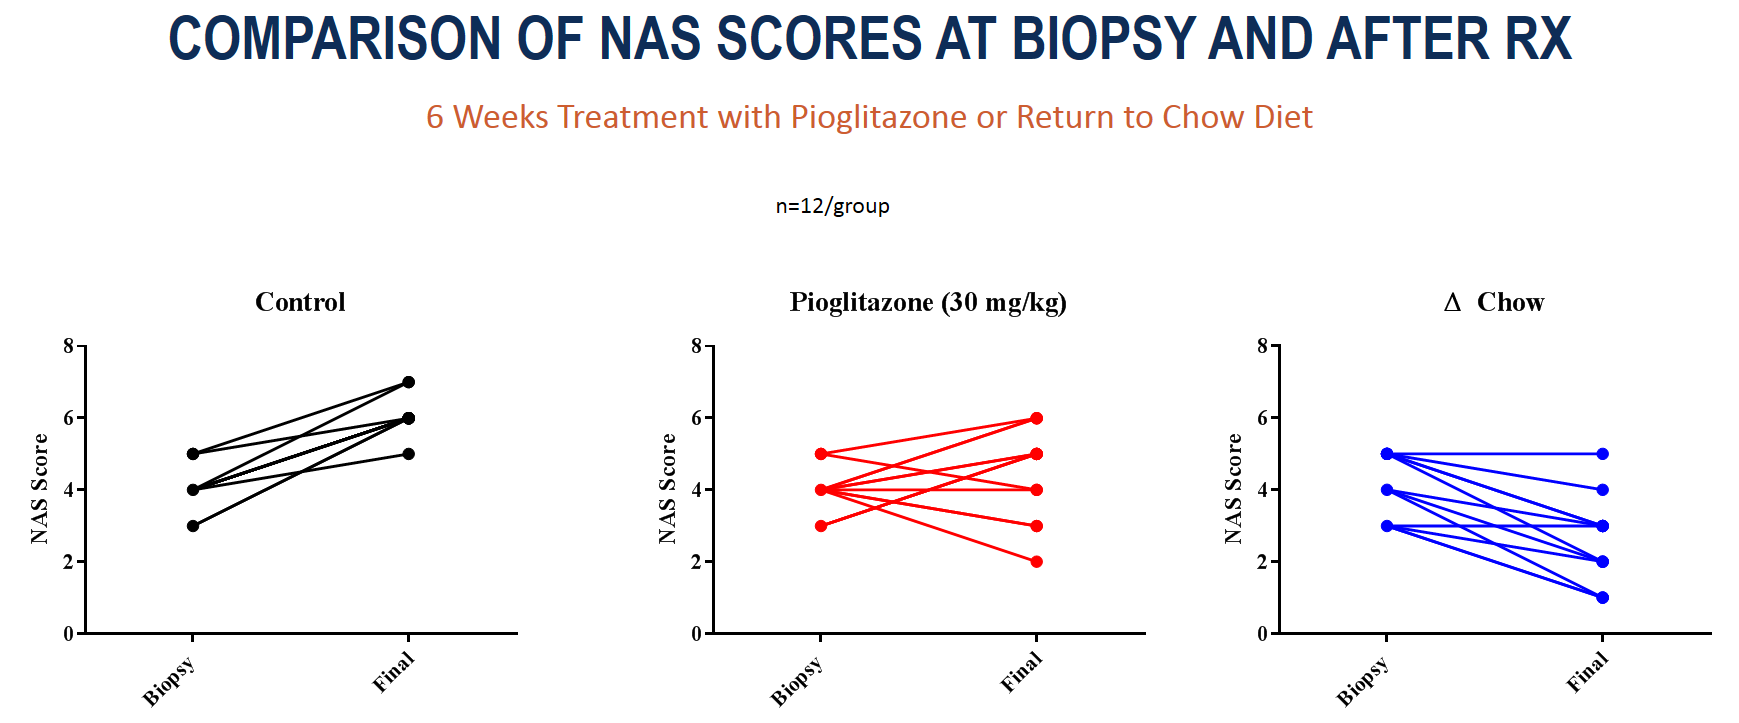 Animals within the same group demonstrate varying NAS scores at baseline and final biopsies.